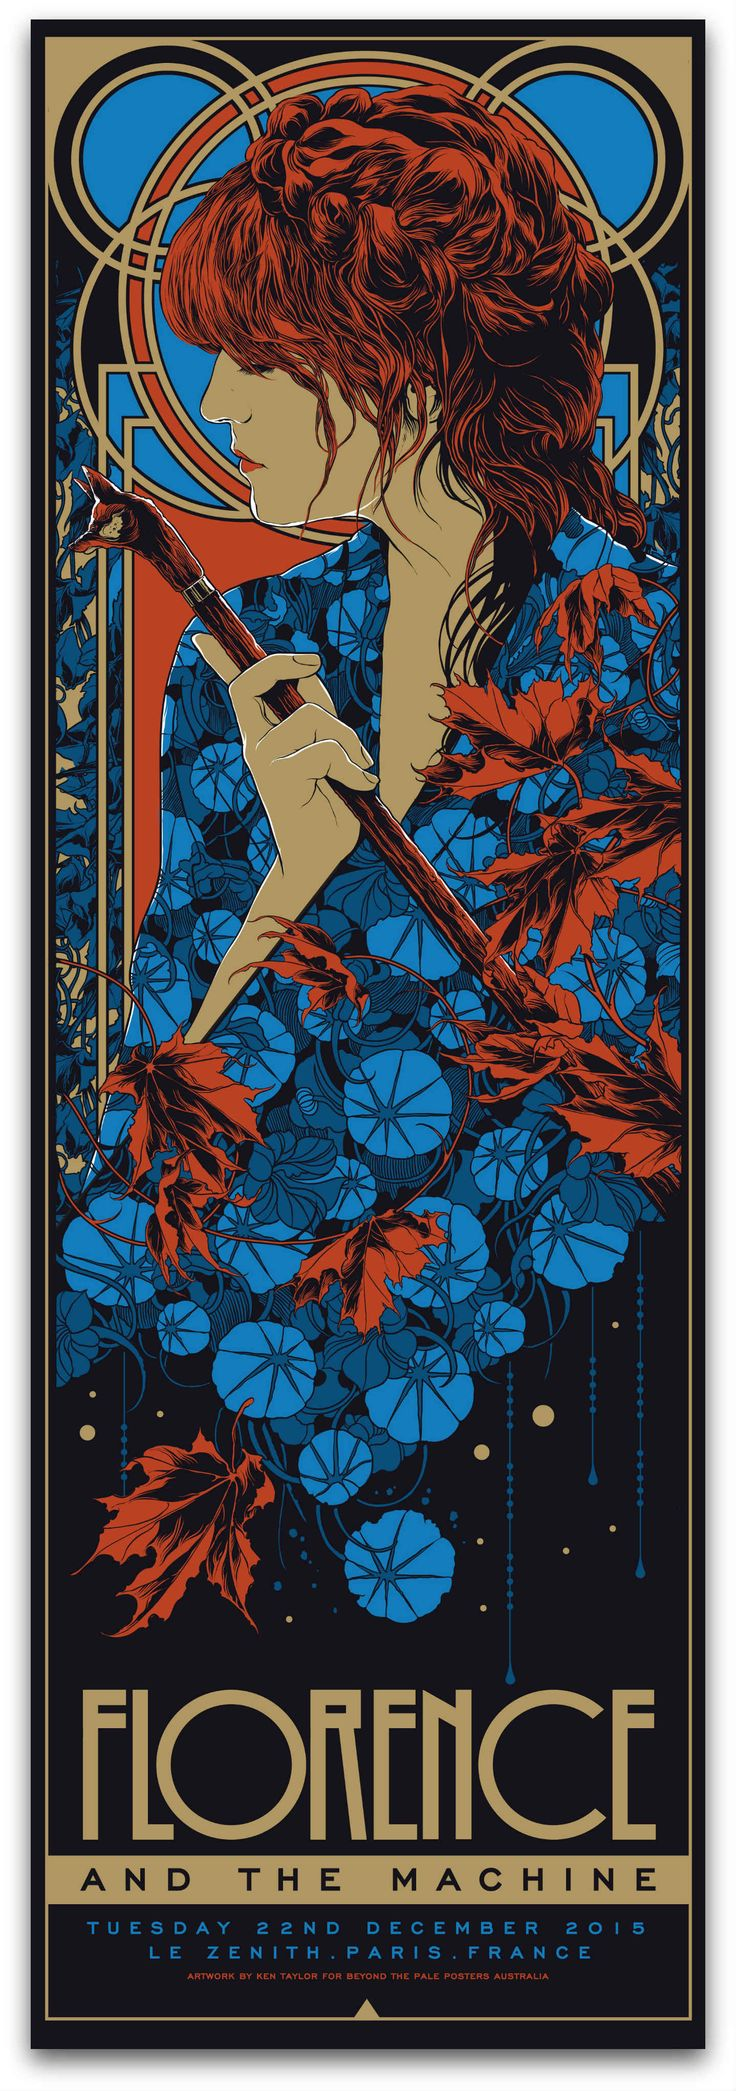 Florence and the Machine Concert Poster by Ken Taylor                                                                                                                                                      More